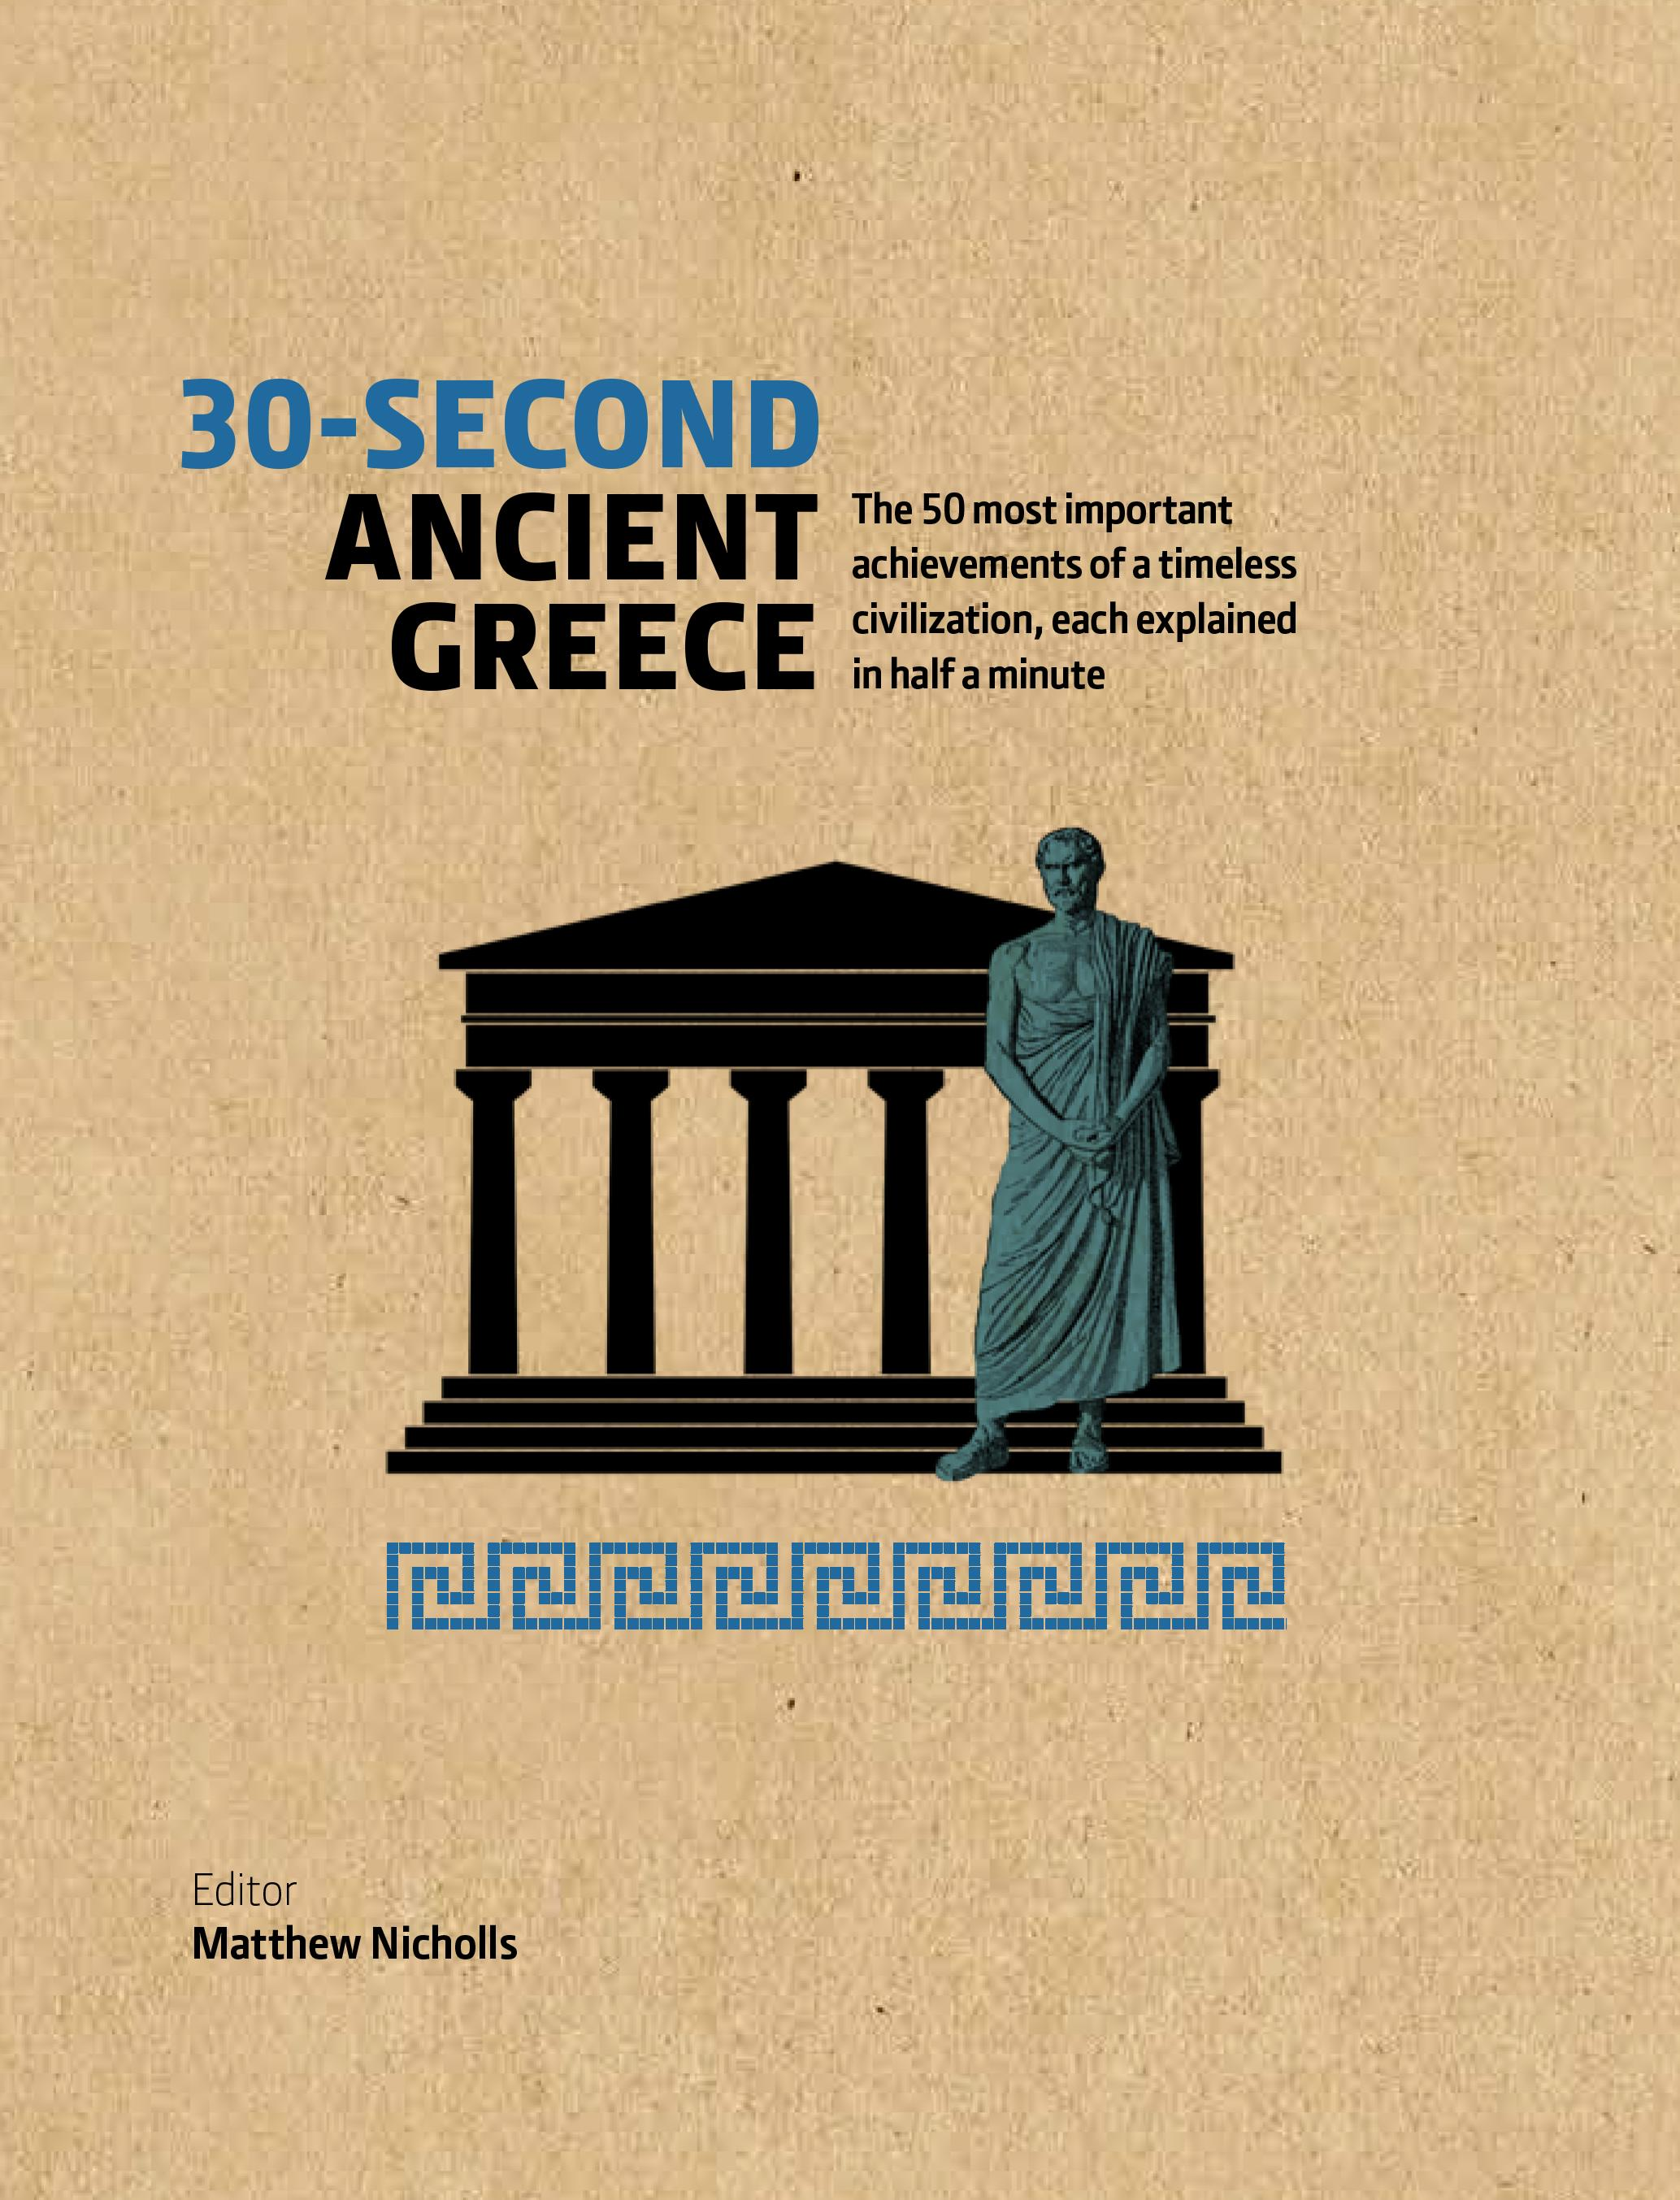 30-Second Ancient Greece